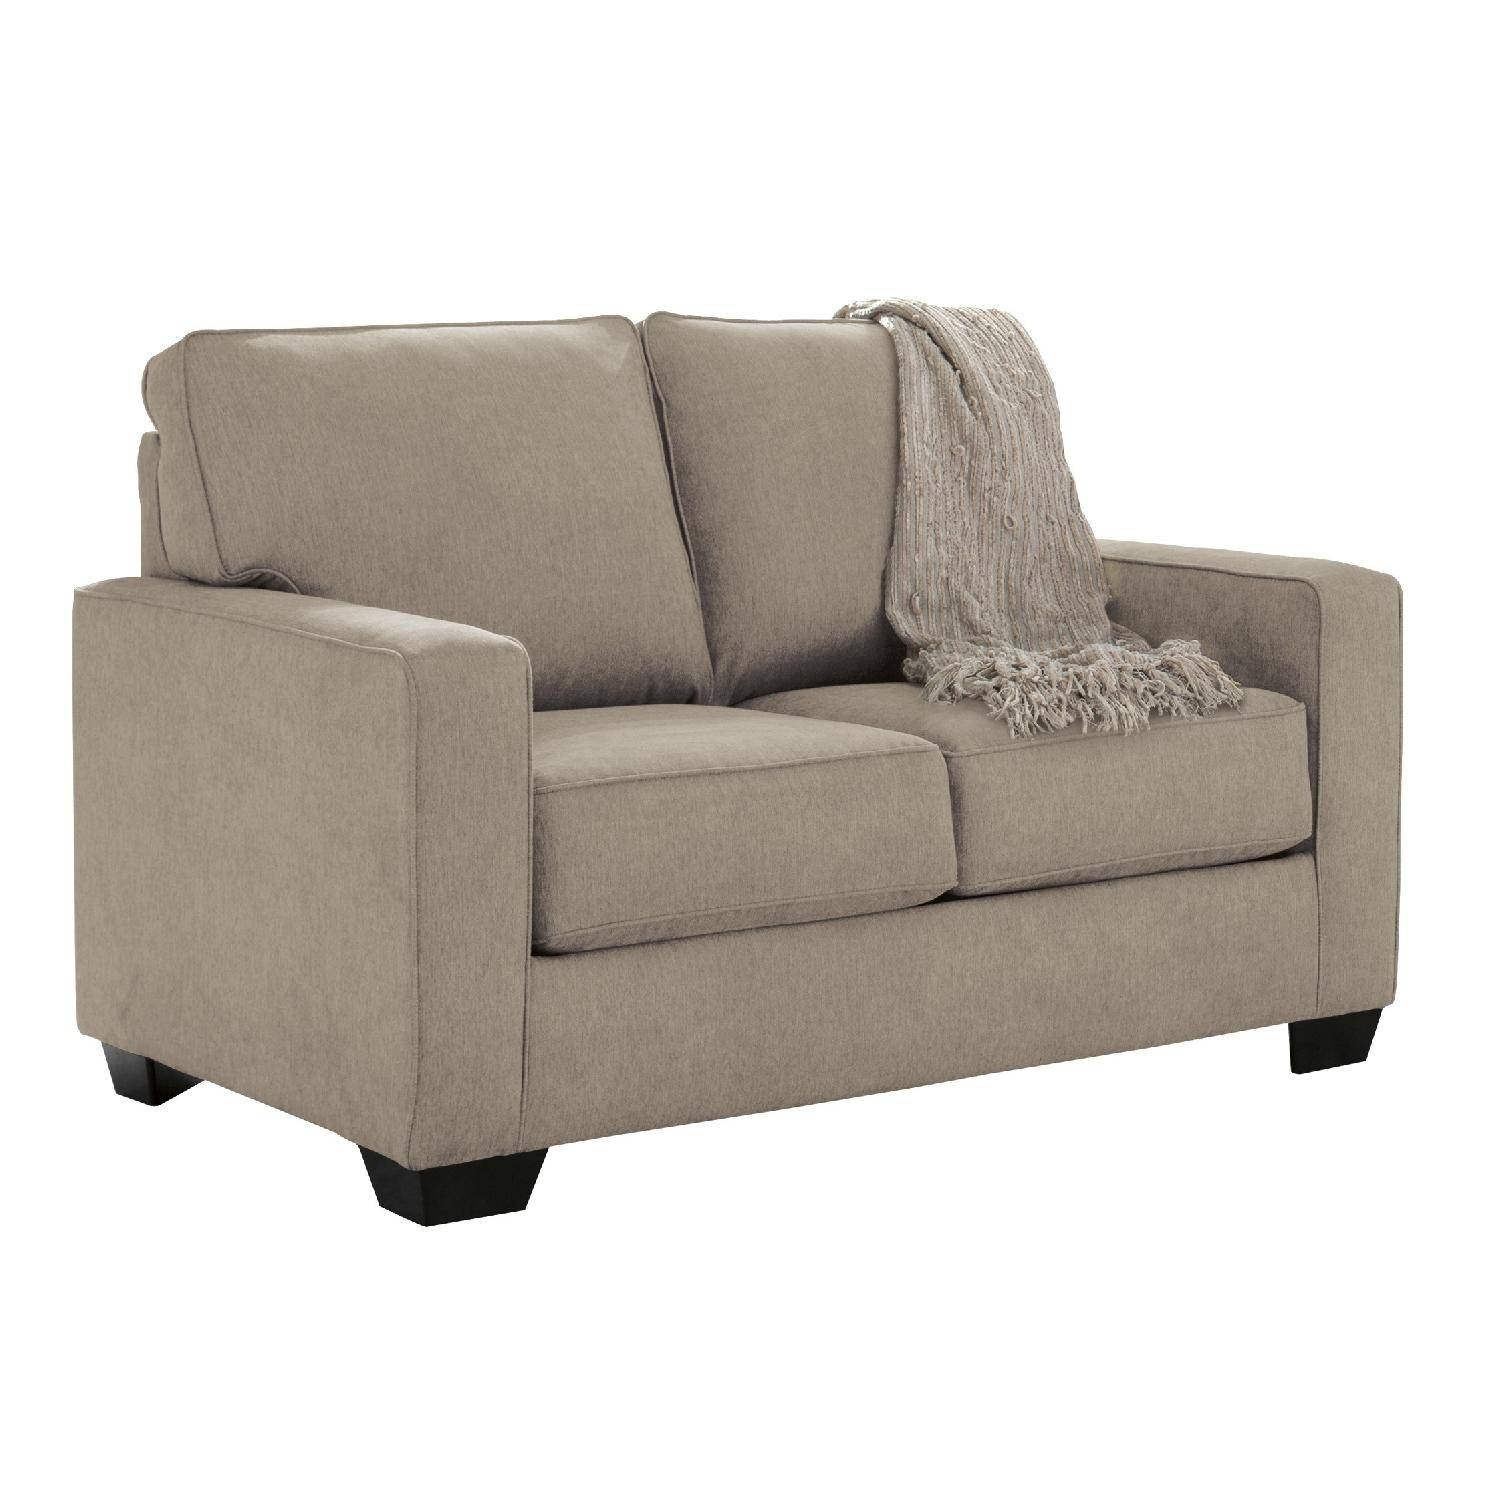 Ashley's Zeb Contemporary 2 Seater Twin Sleeper Sofa In - Aptdeco within Twin Sleeper Sofa Chairs (Image 1 of 30)